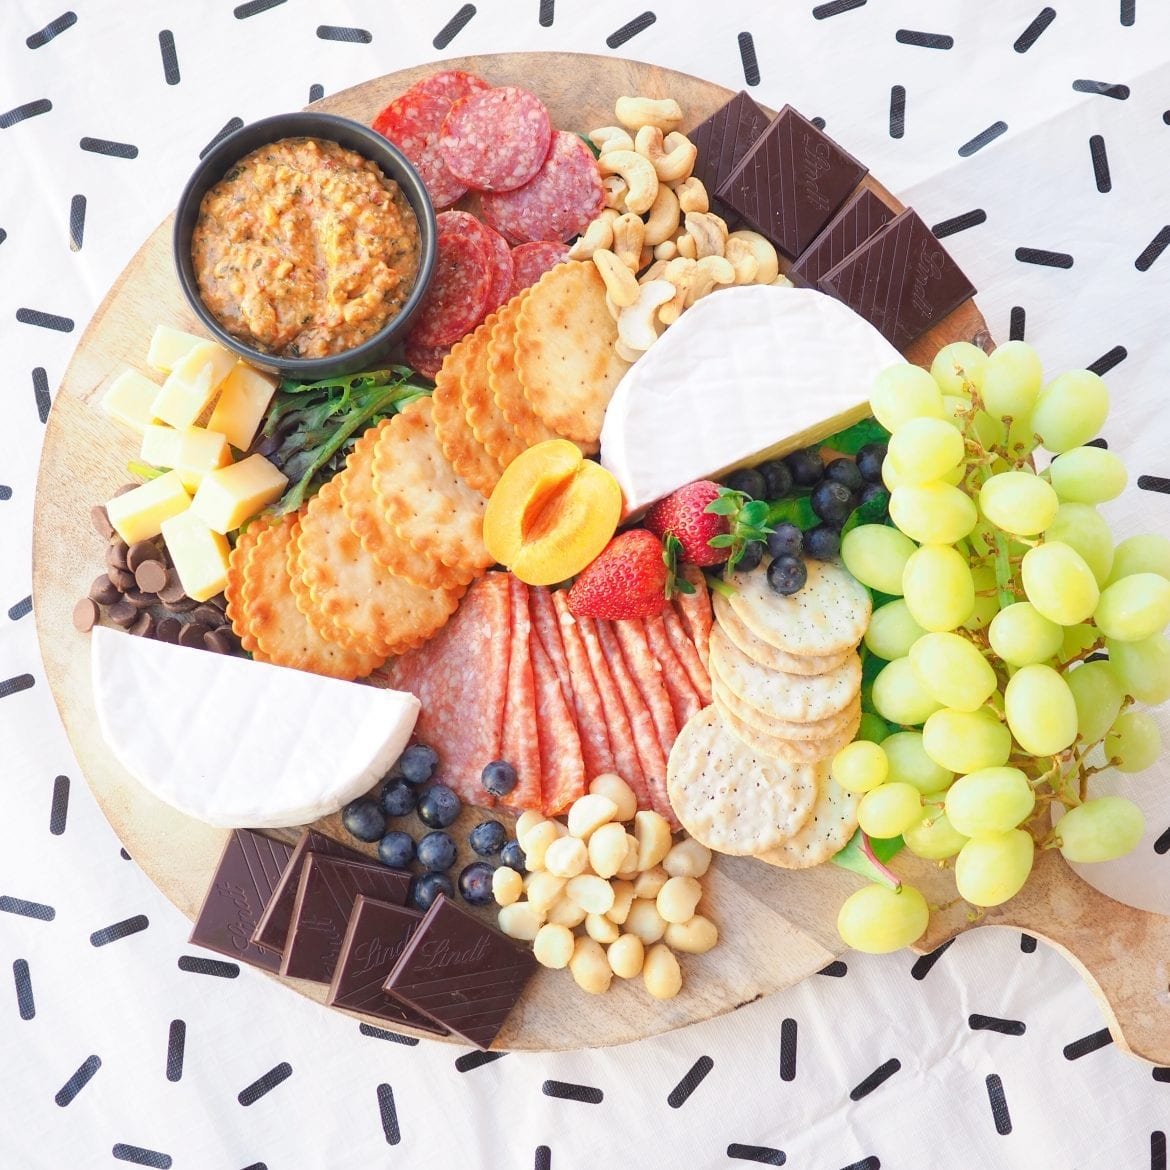 I love creating a masterpiece platter for my family and friends and this cheese and meat platter sure was 'legendairy'